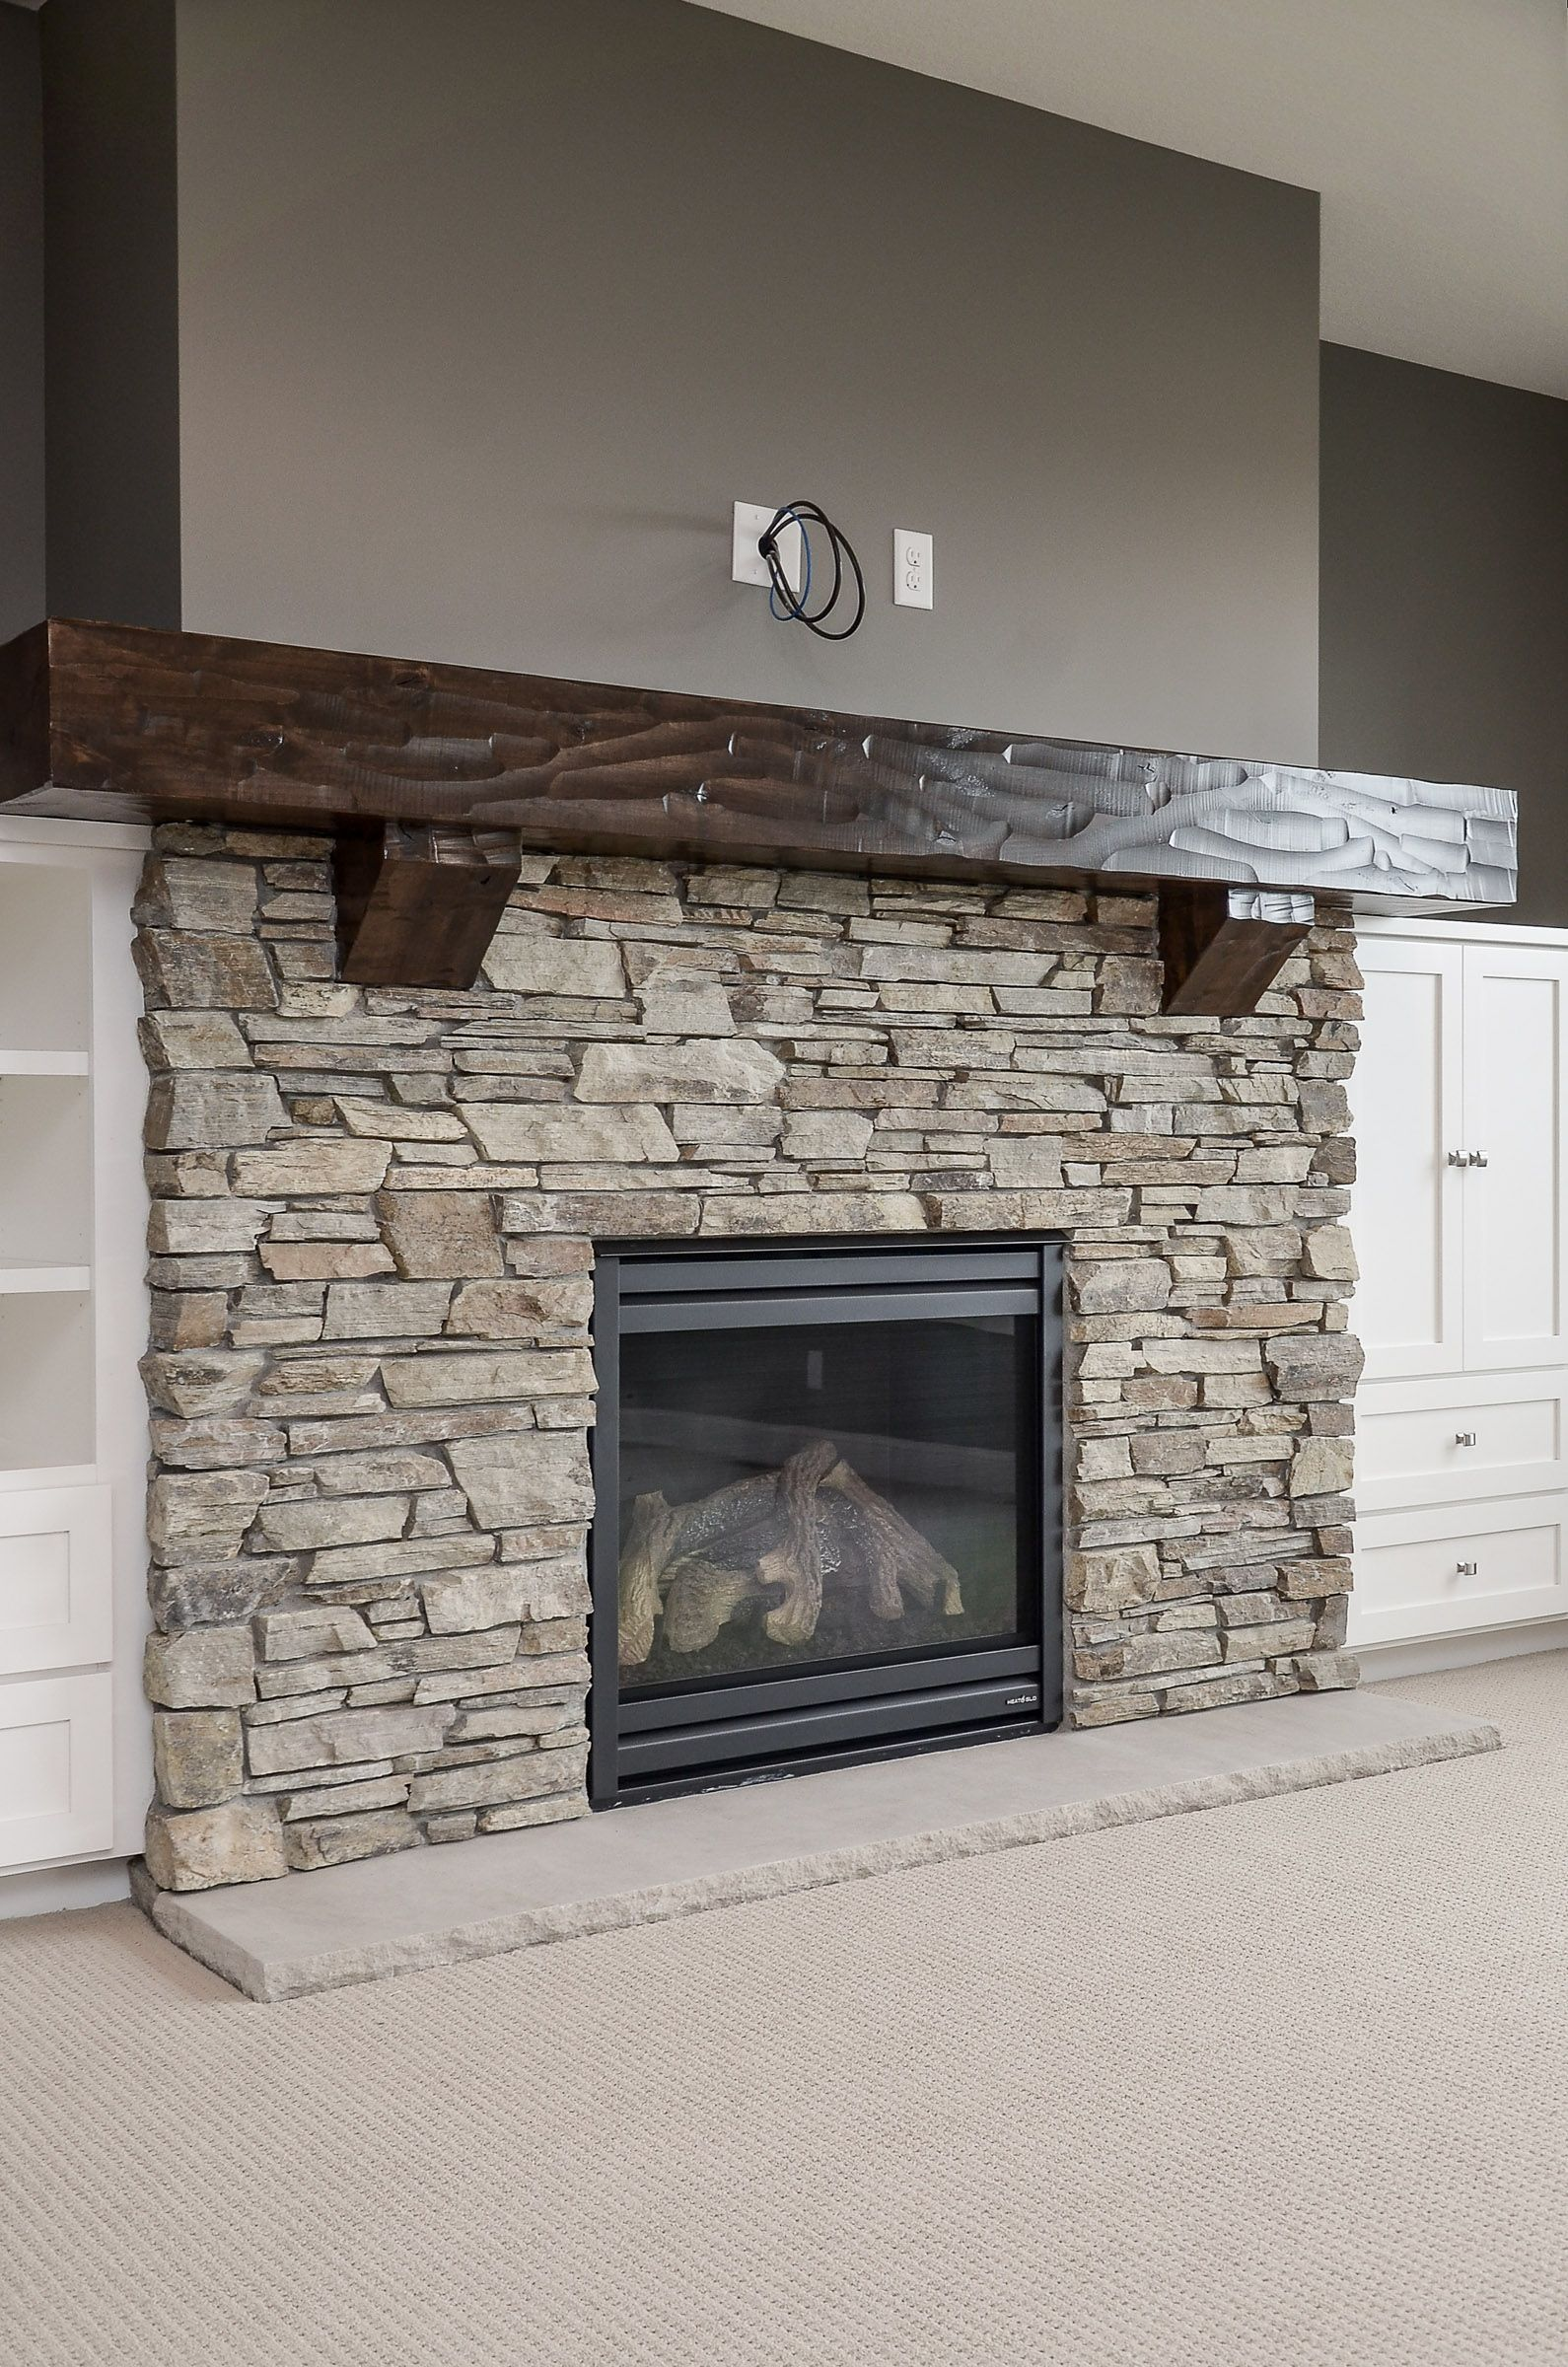 Pin By Ashley Jensen On Basement Area In 2020 Fireplace Remodel